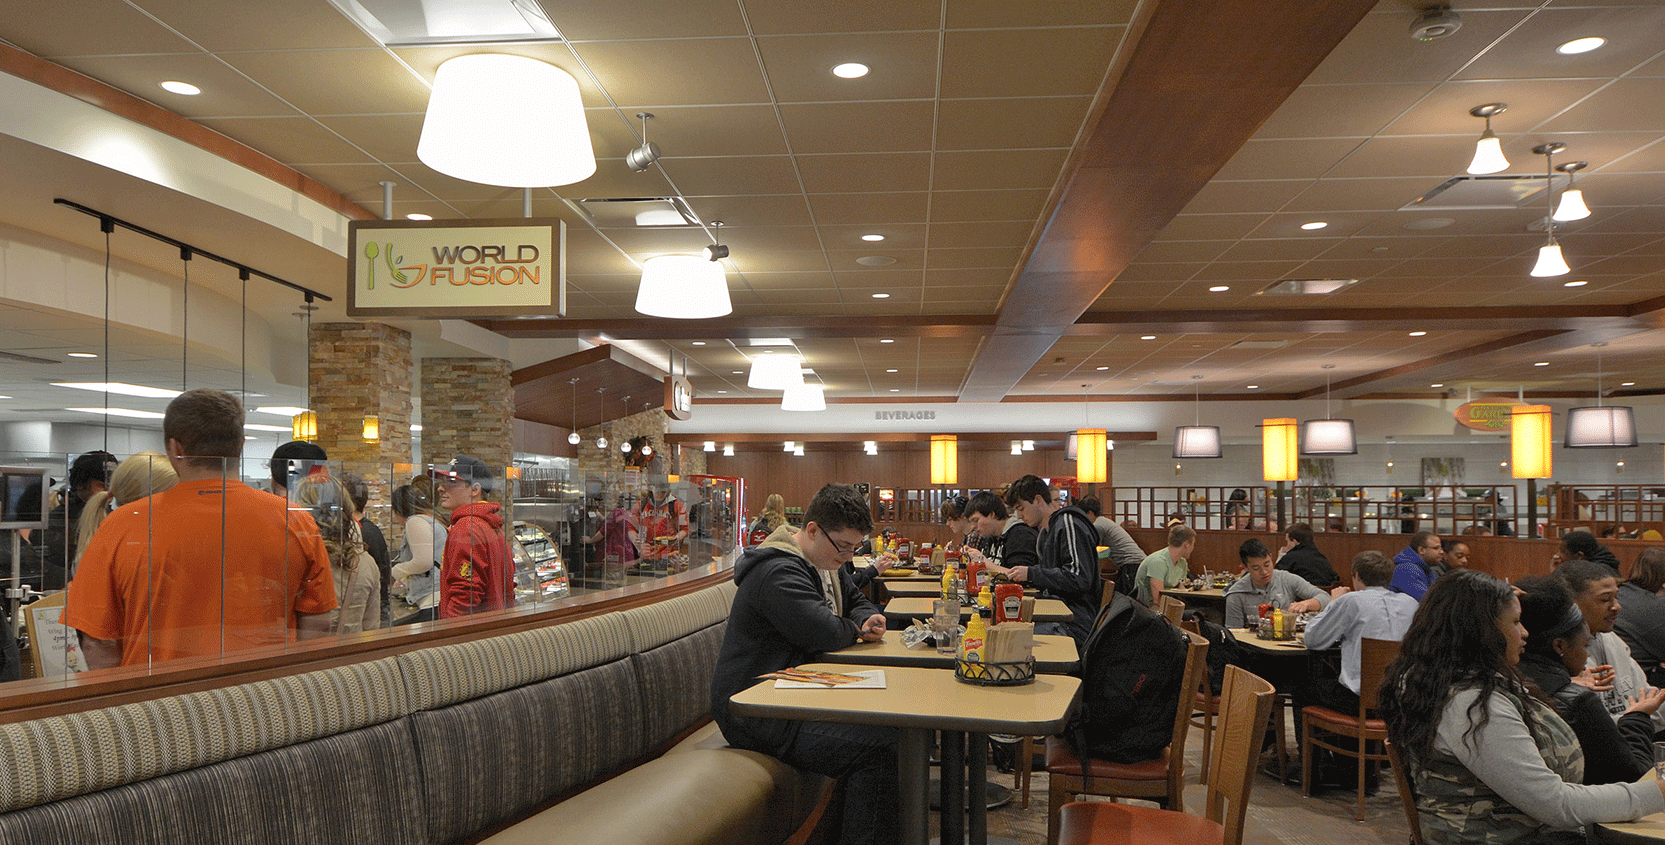 Ferris-State-University-University-Center-Food-Court-4-1665x845